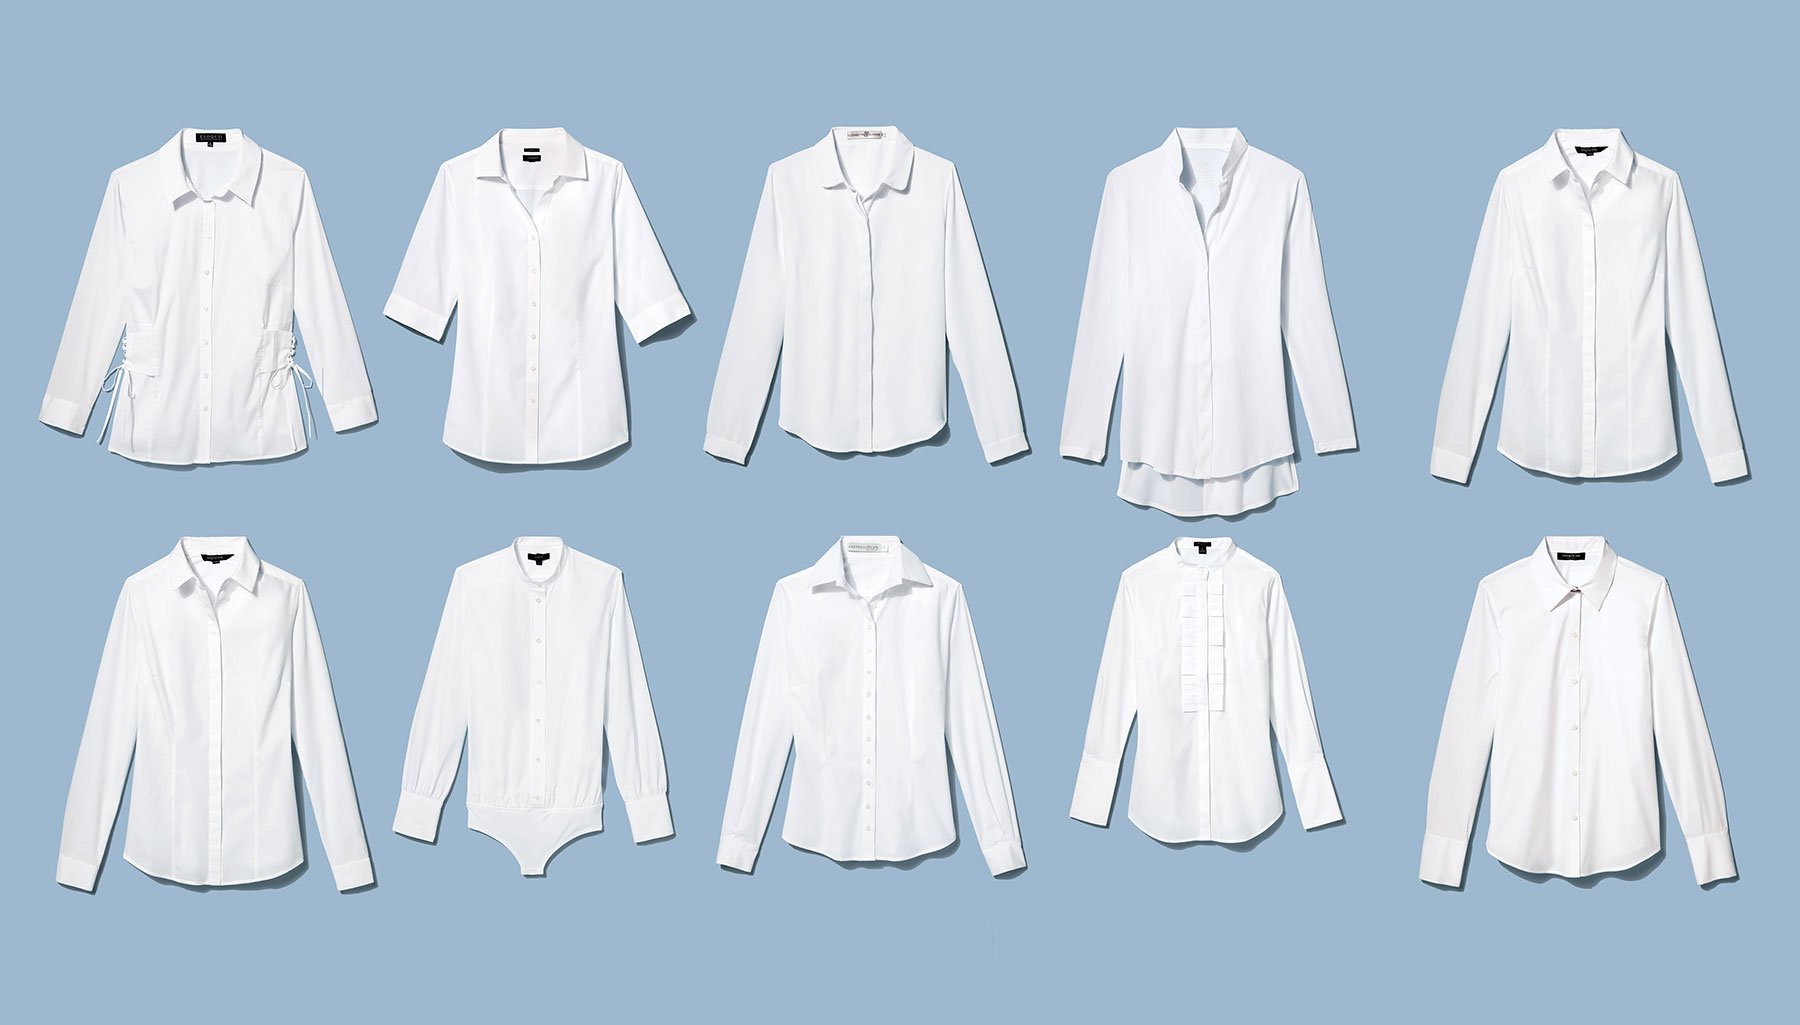 74a6a88f27a06 The 10 Best White Shirts We ve Ever Worn